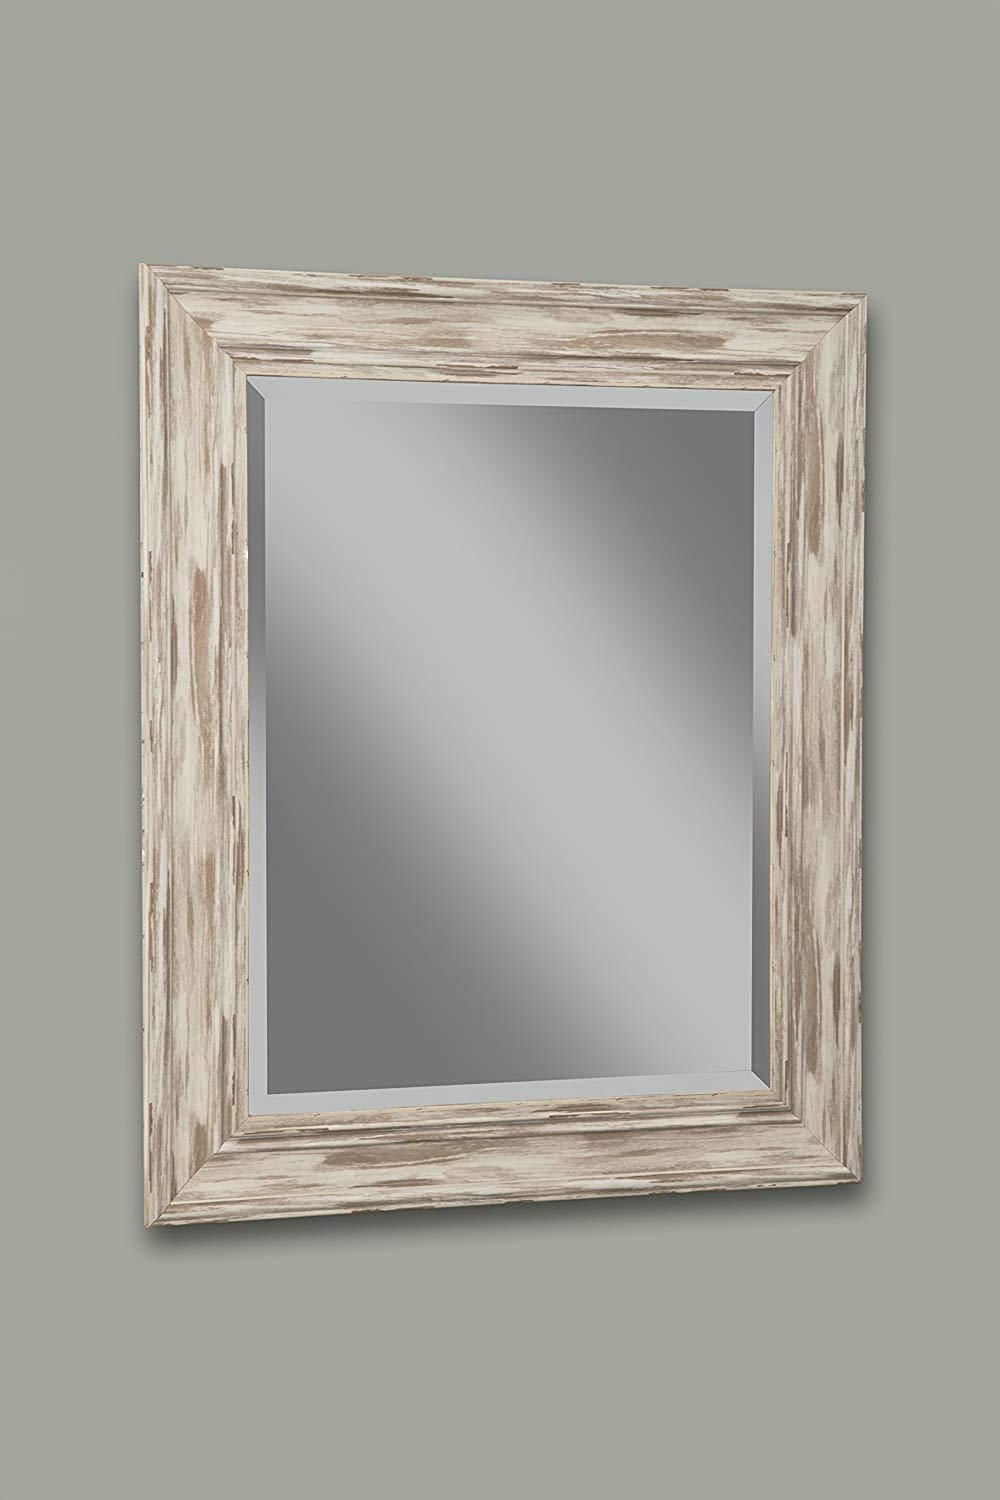 2020 Bartolo Accent Mirrors Regarding Polystyrene Framed Wall Mirror With Sharp Edges, Antique White In (View 8 of 20)